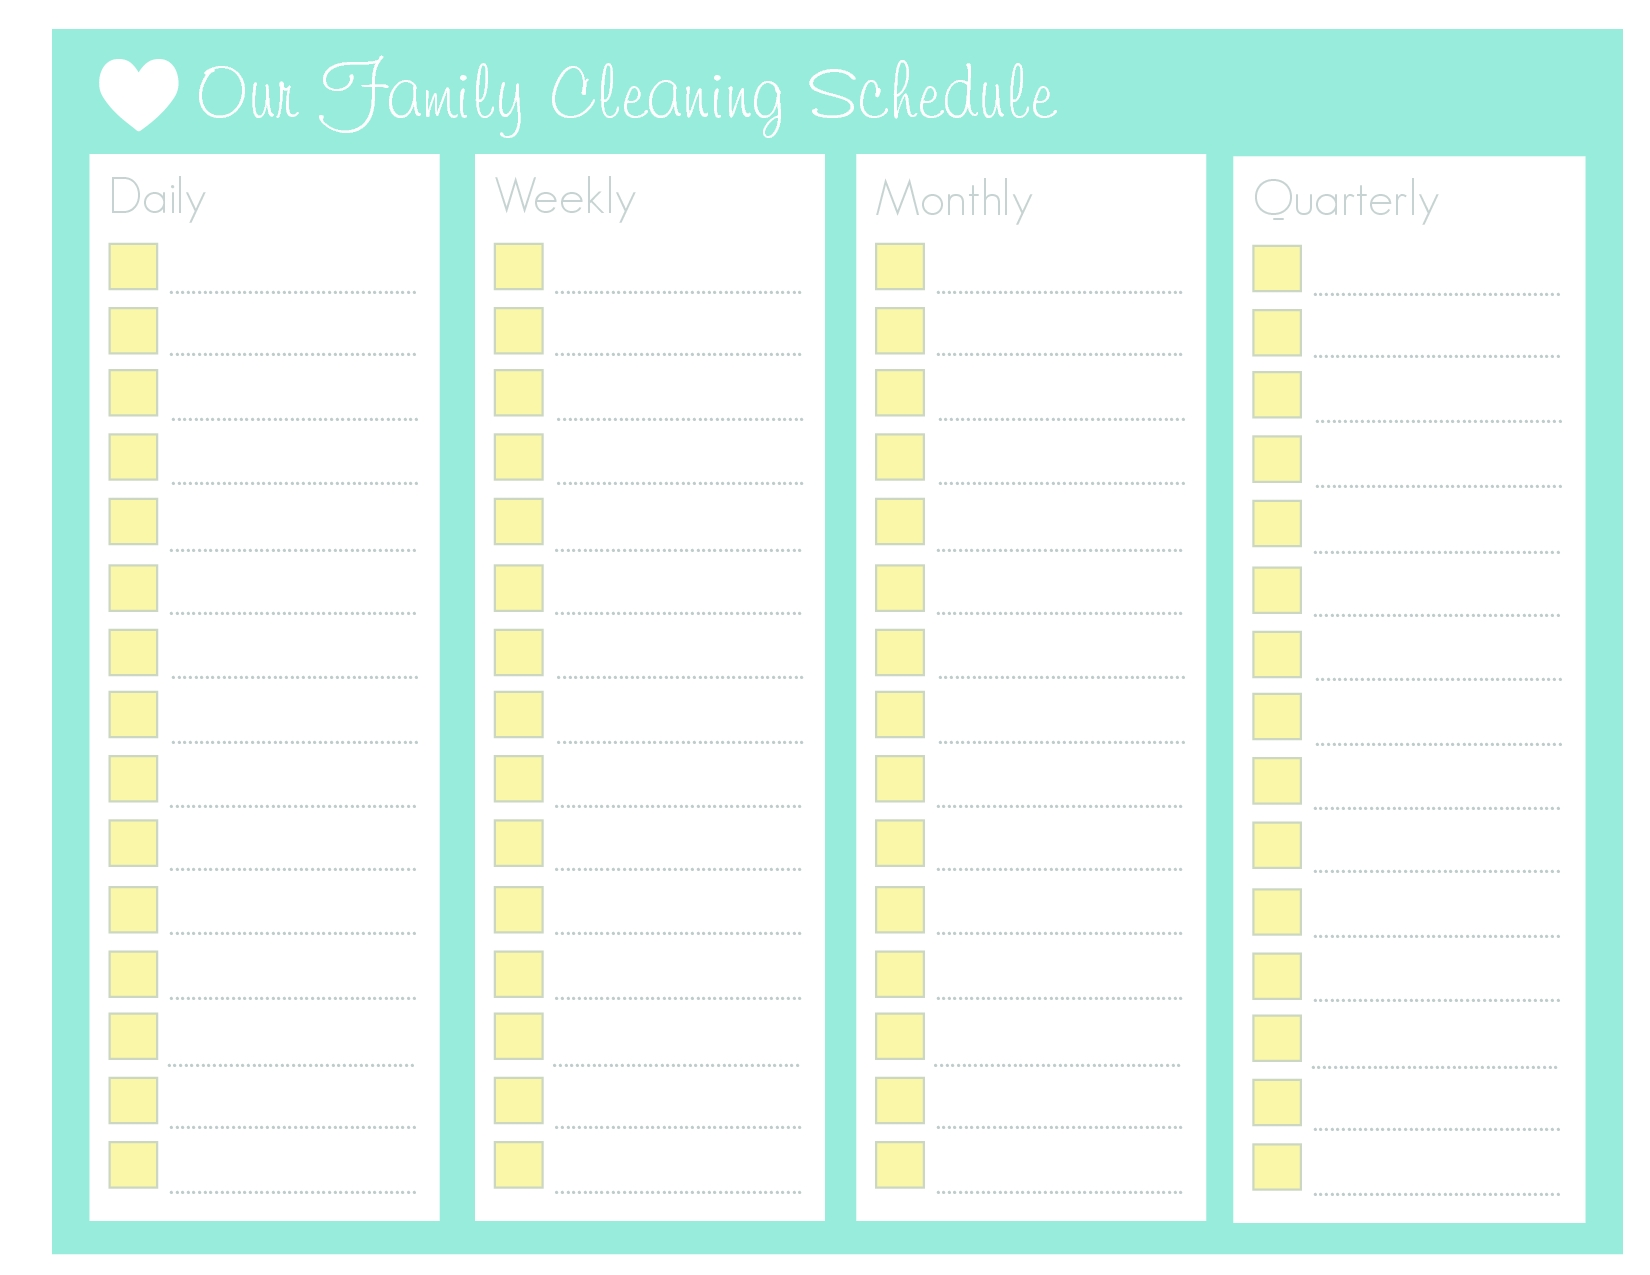 Printable Blank Monthly Chore Daily Checklist - Google-Blank Monthly Checklist Printable